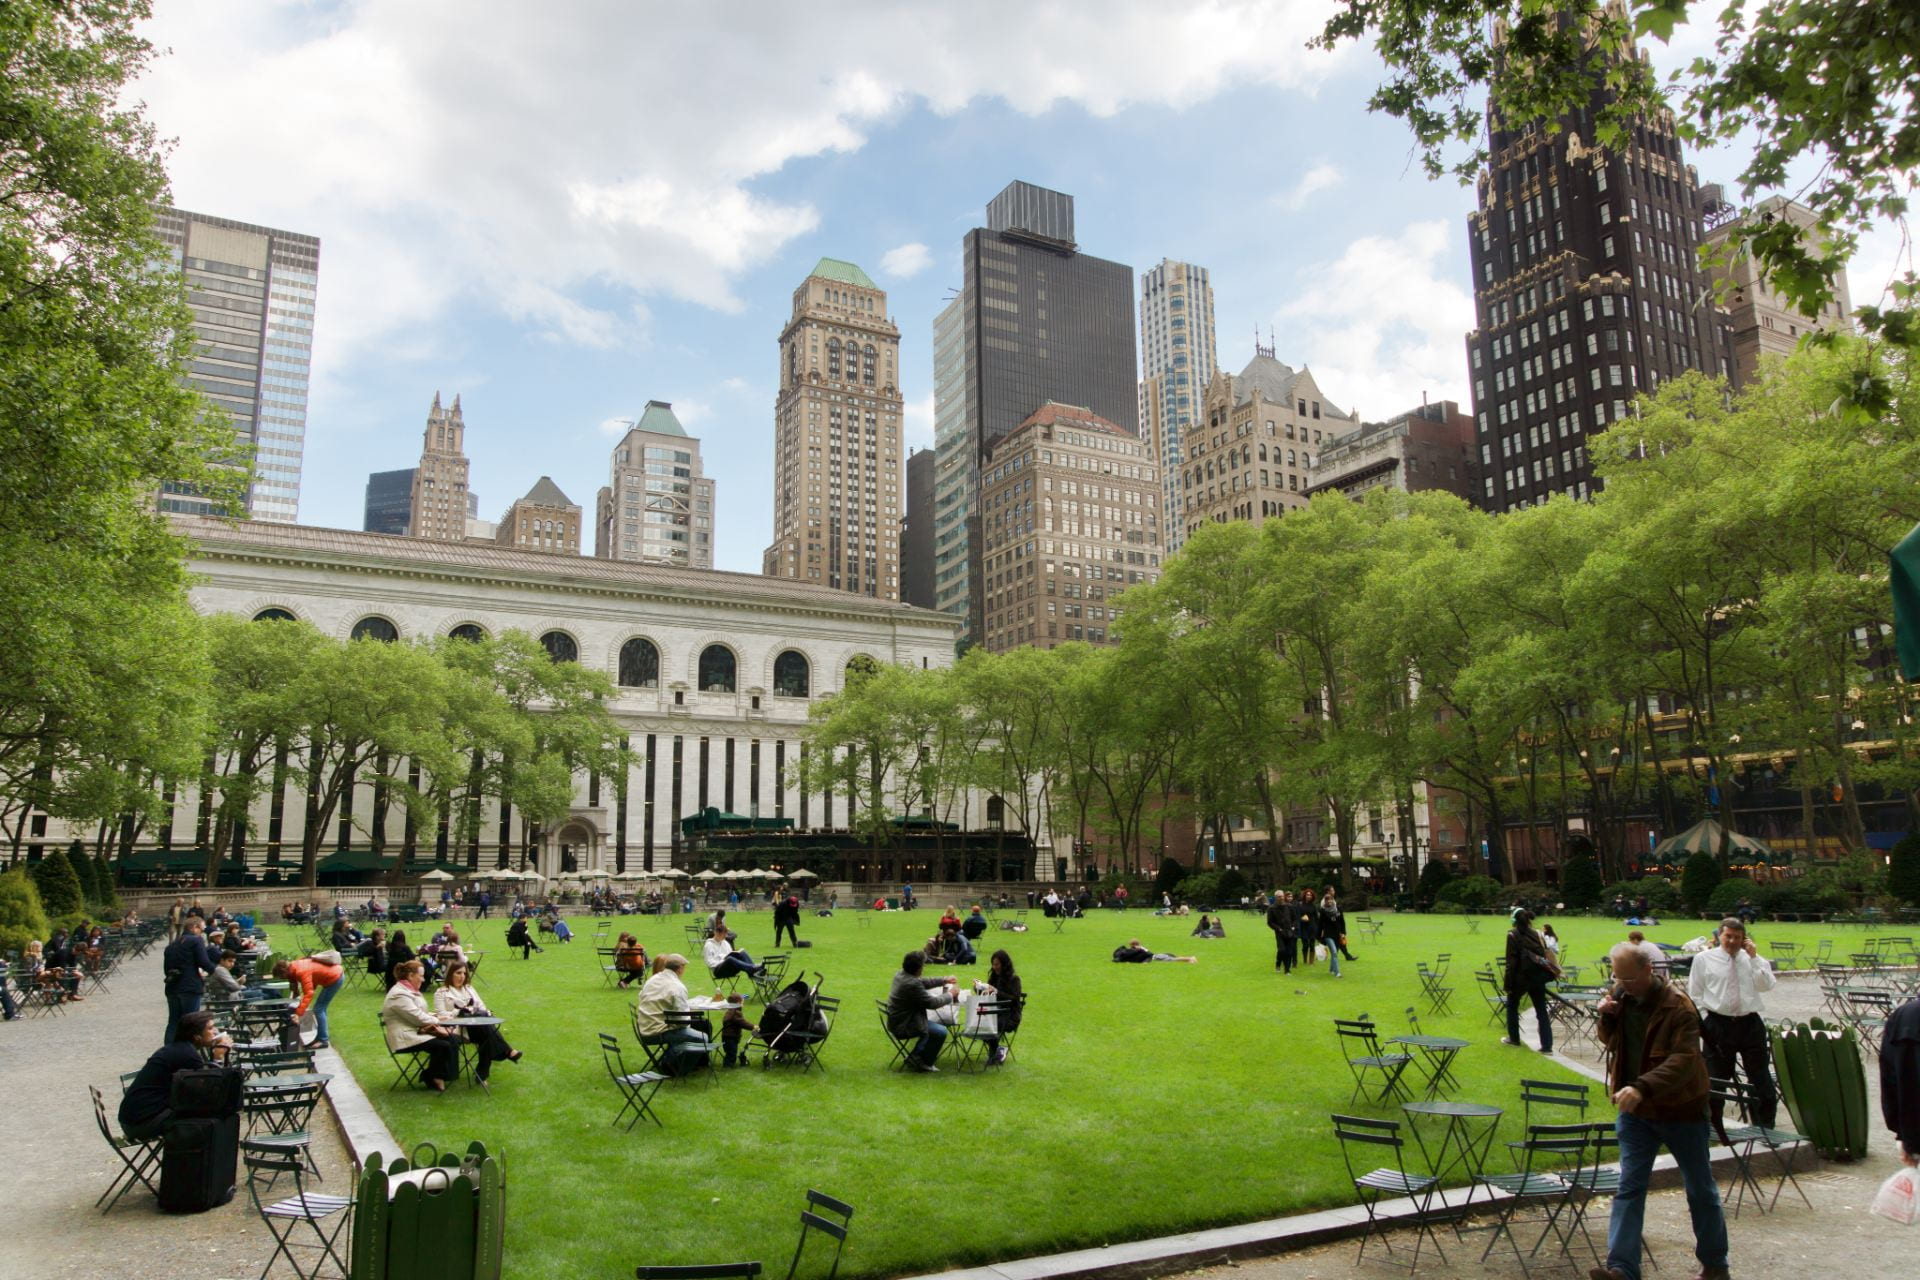 An image of people enjoying green spaces in Bryant Park in New York City